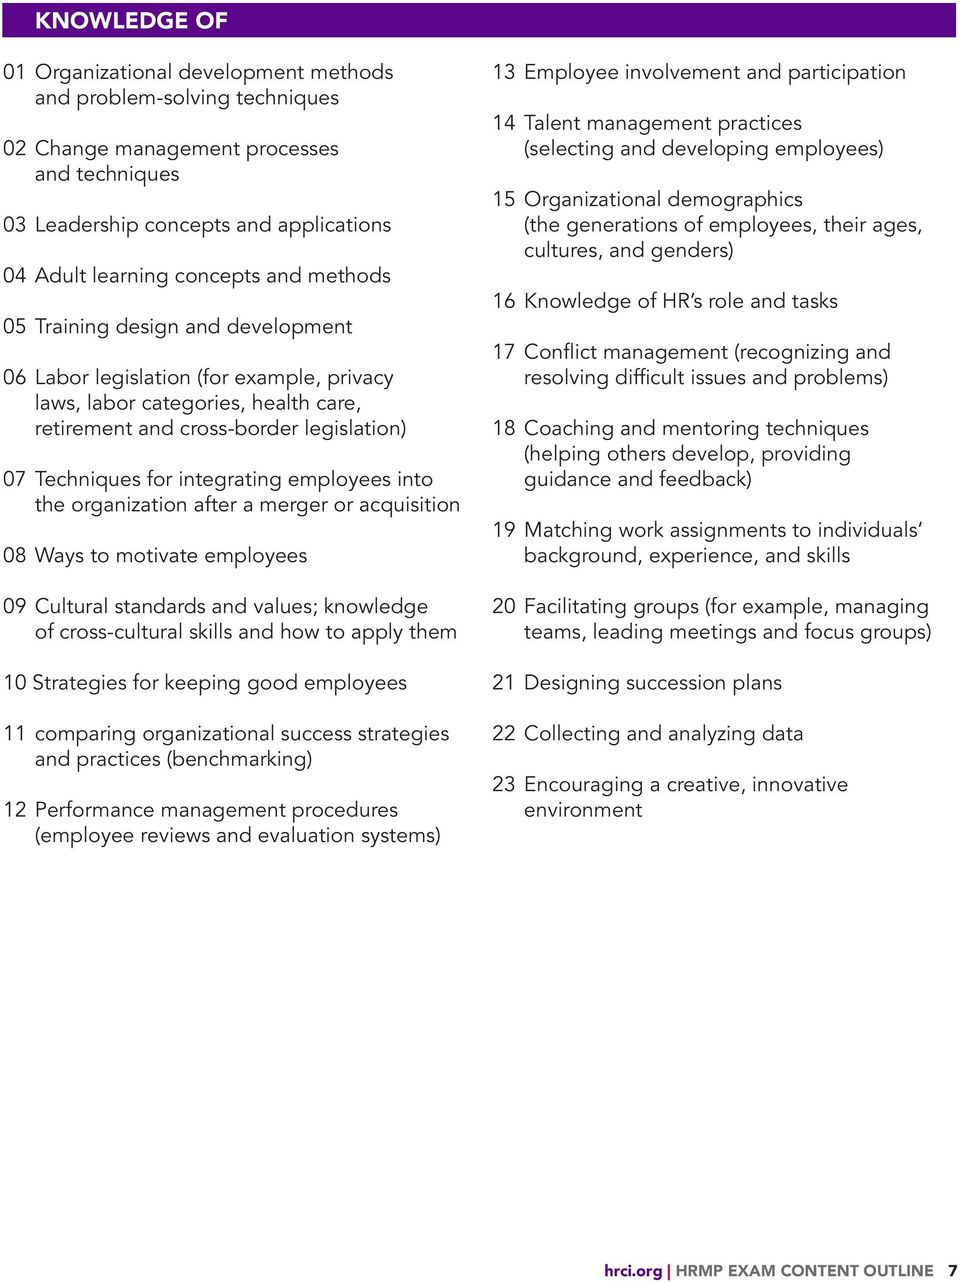 employees into the organization after a merger or acquisition 08 Ways to motivate employees 09 Cultural standards and values; knowledge of cross-cultural skills and how to apply them 10 Strategies